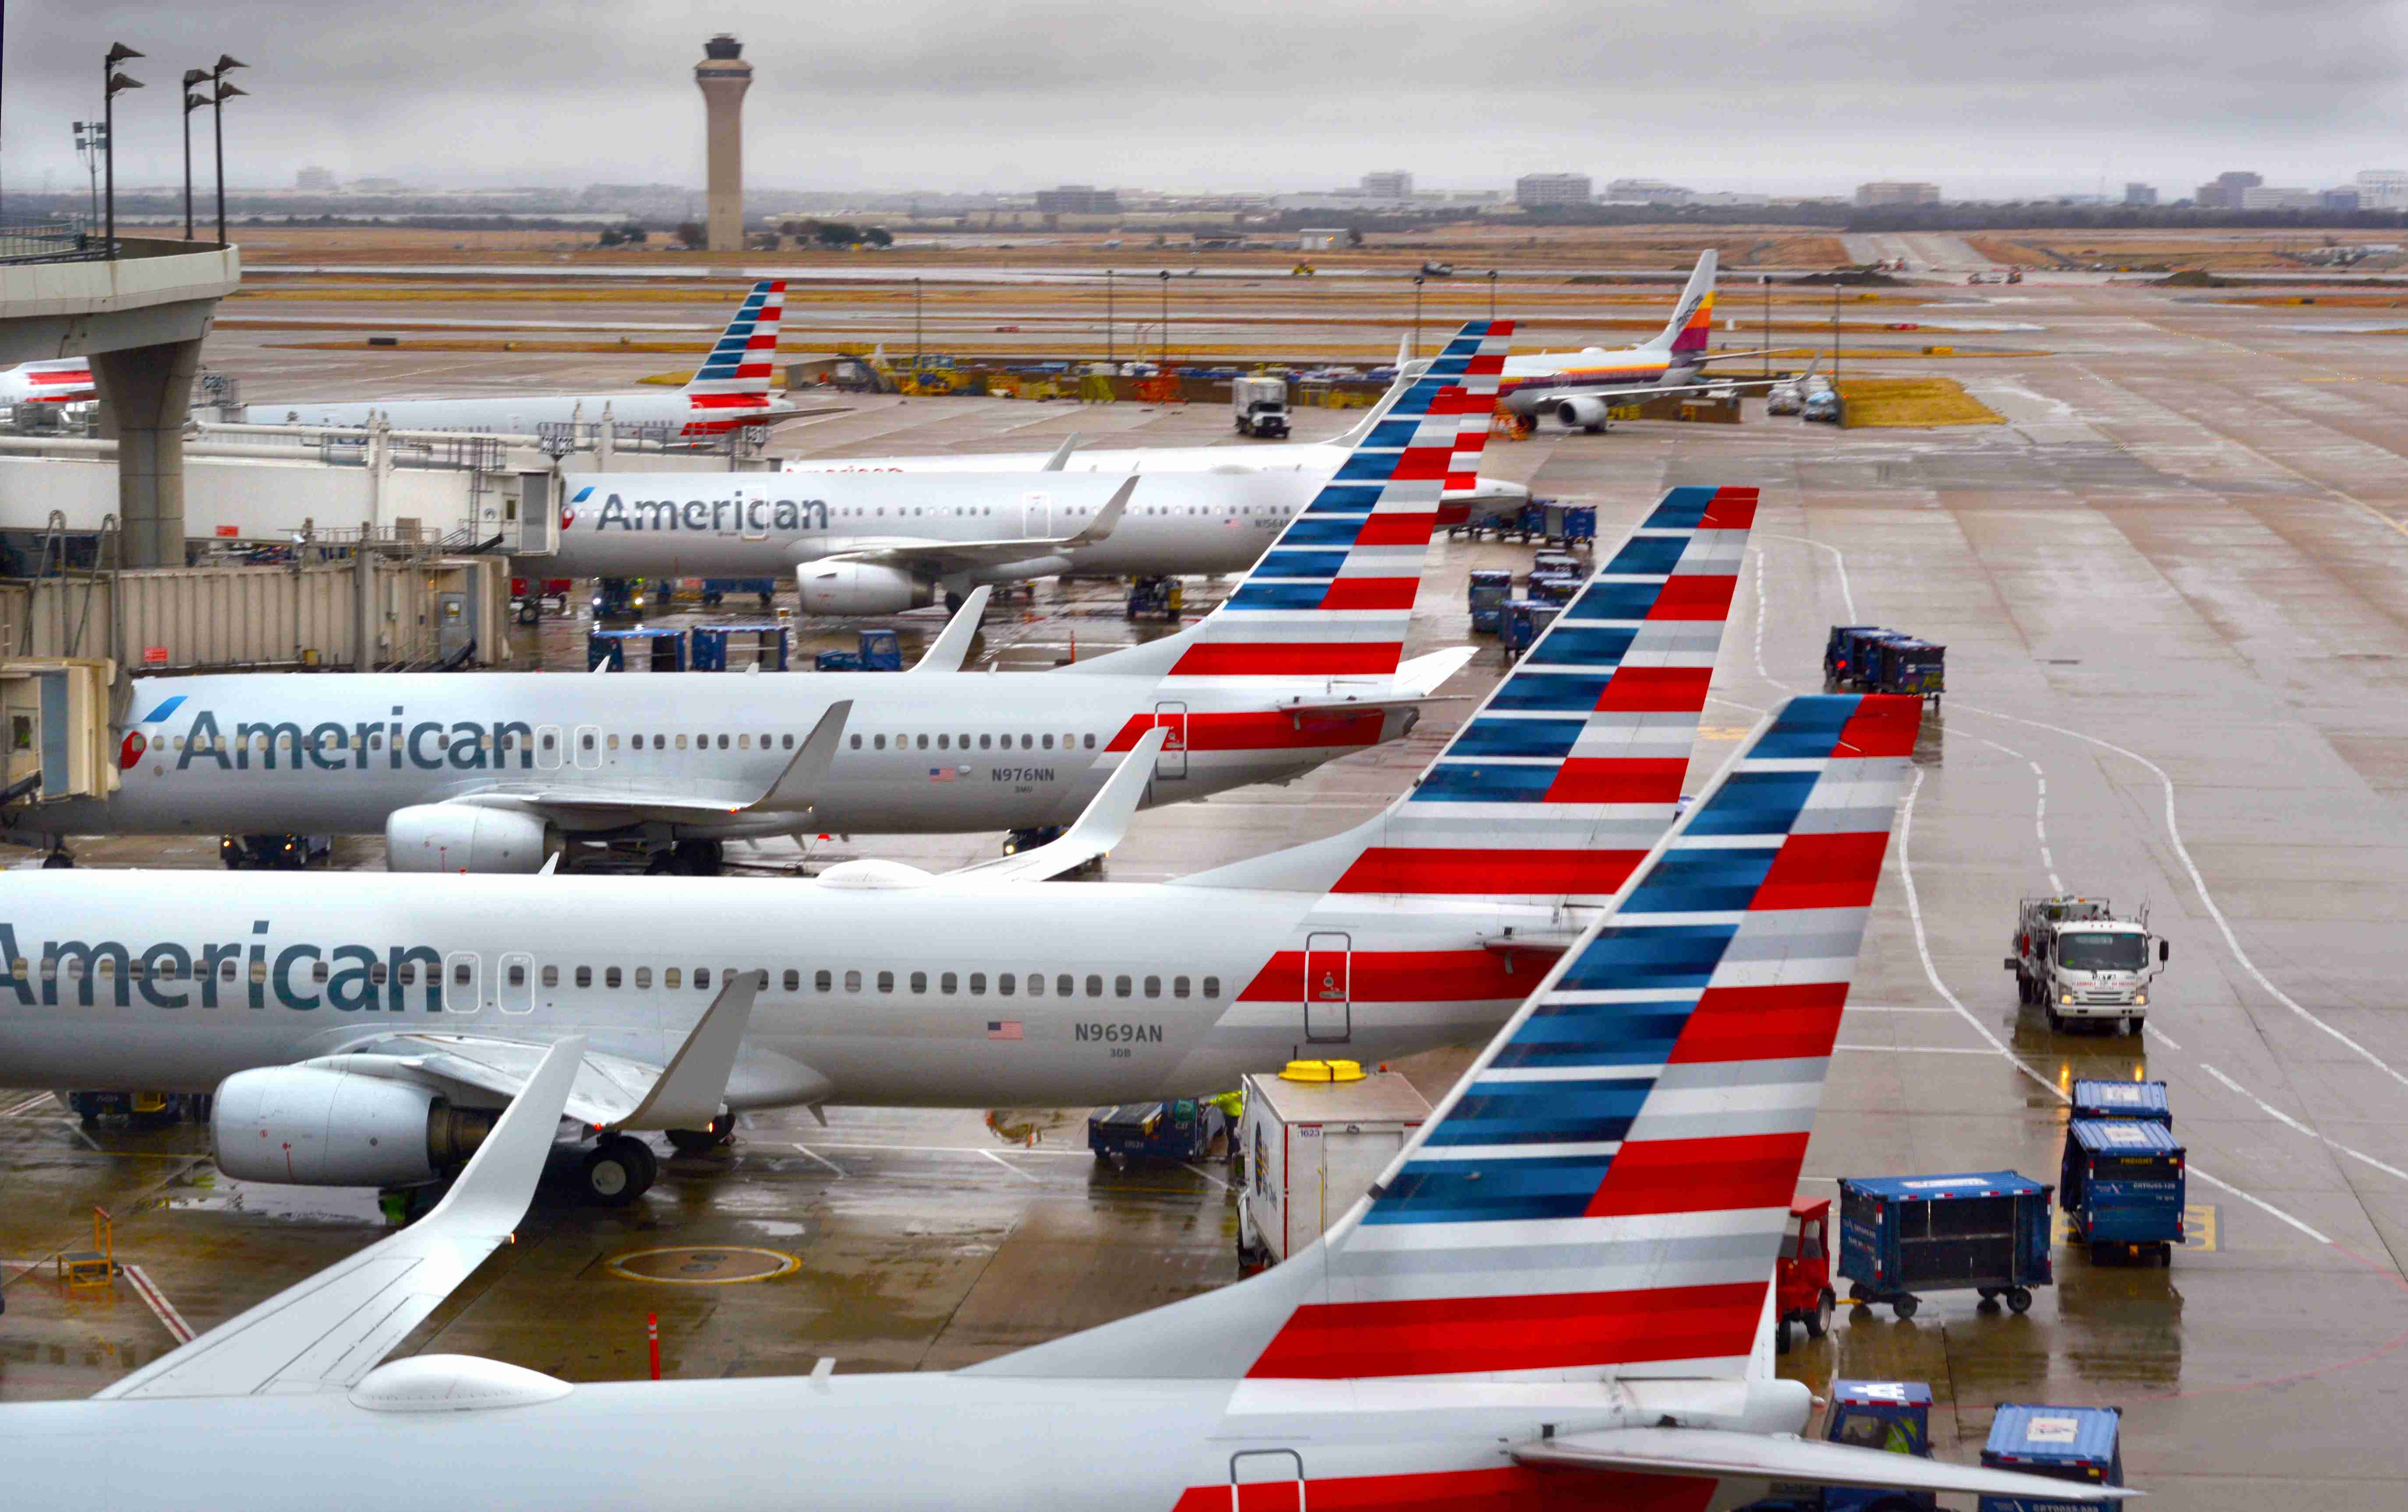 DALLAS, TEXAS - DECEMBER 8, 2018: American Airlines passenger jets parked at their gates on a rainy morning at Dallas/Fort Worth International Airport which serves the Dallas/Fort Worth, Texas, metroplex area in Texas. (Photo by Robert Alexander/Getty Images)